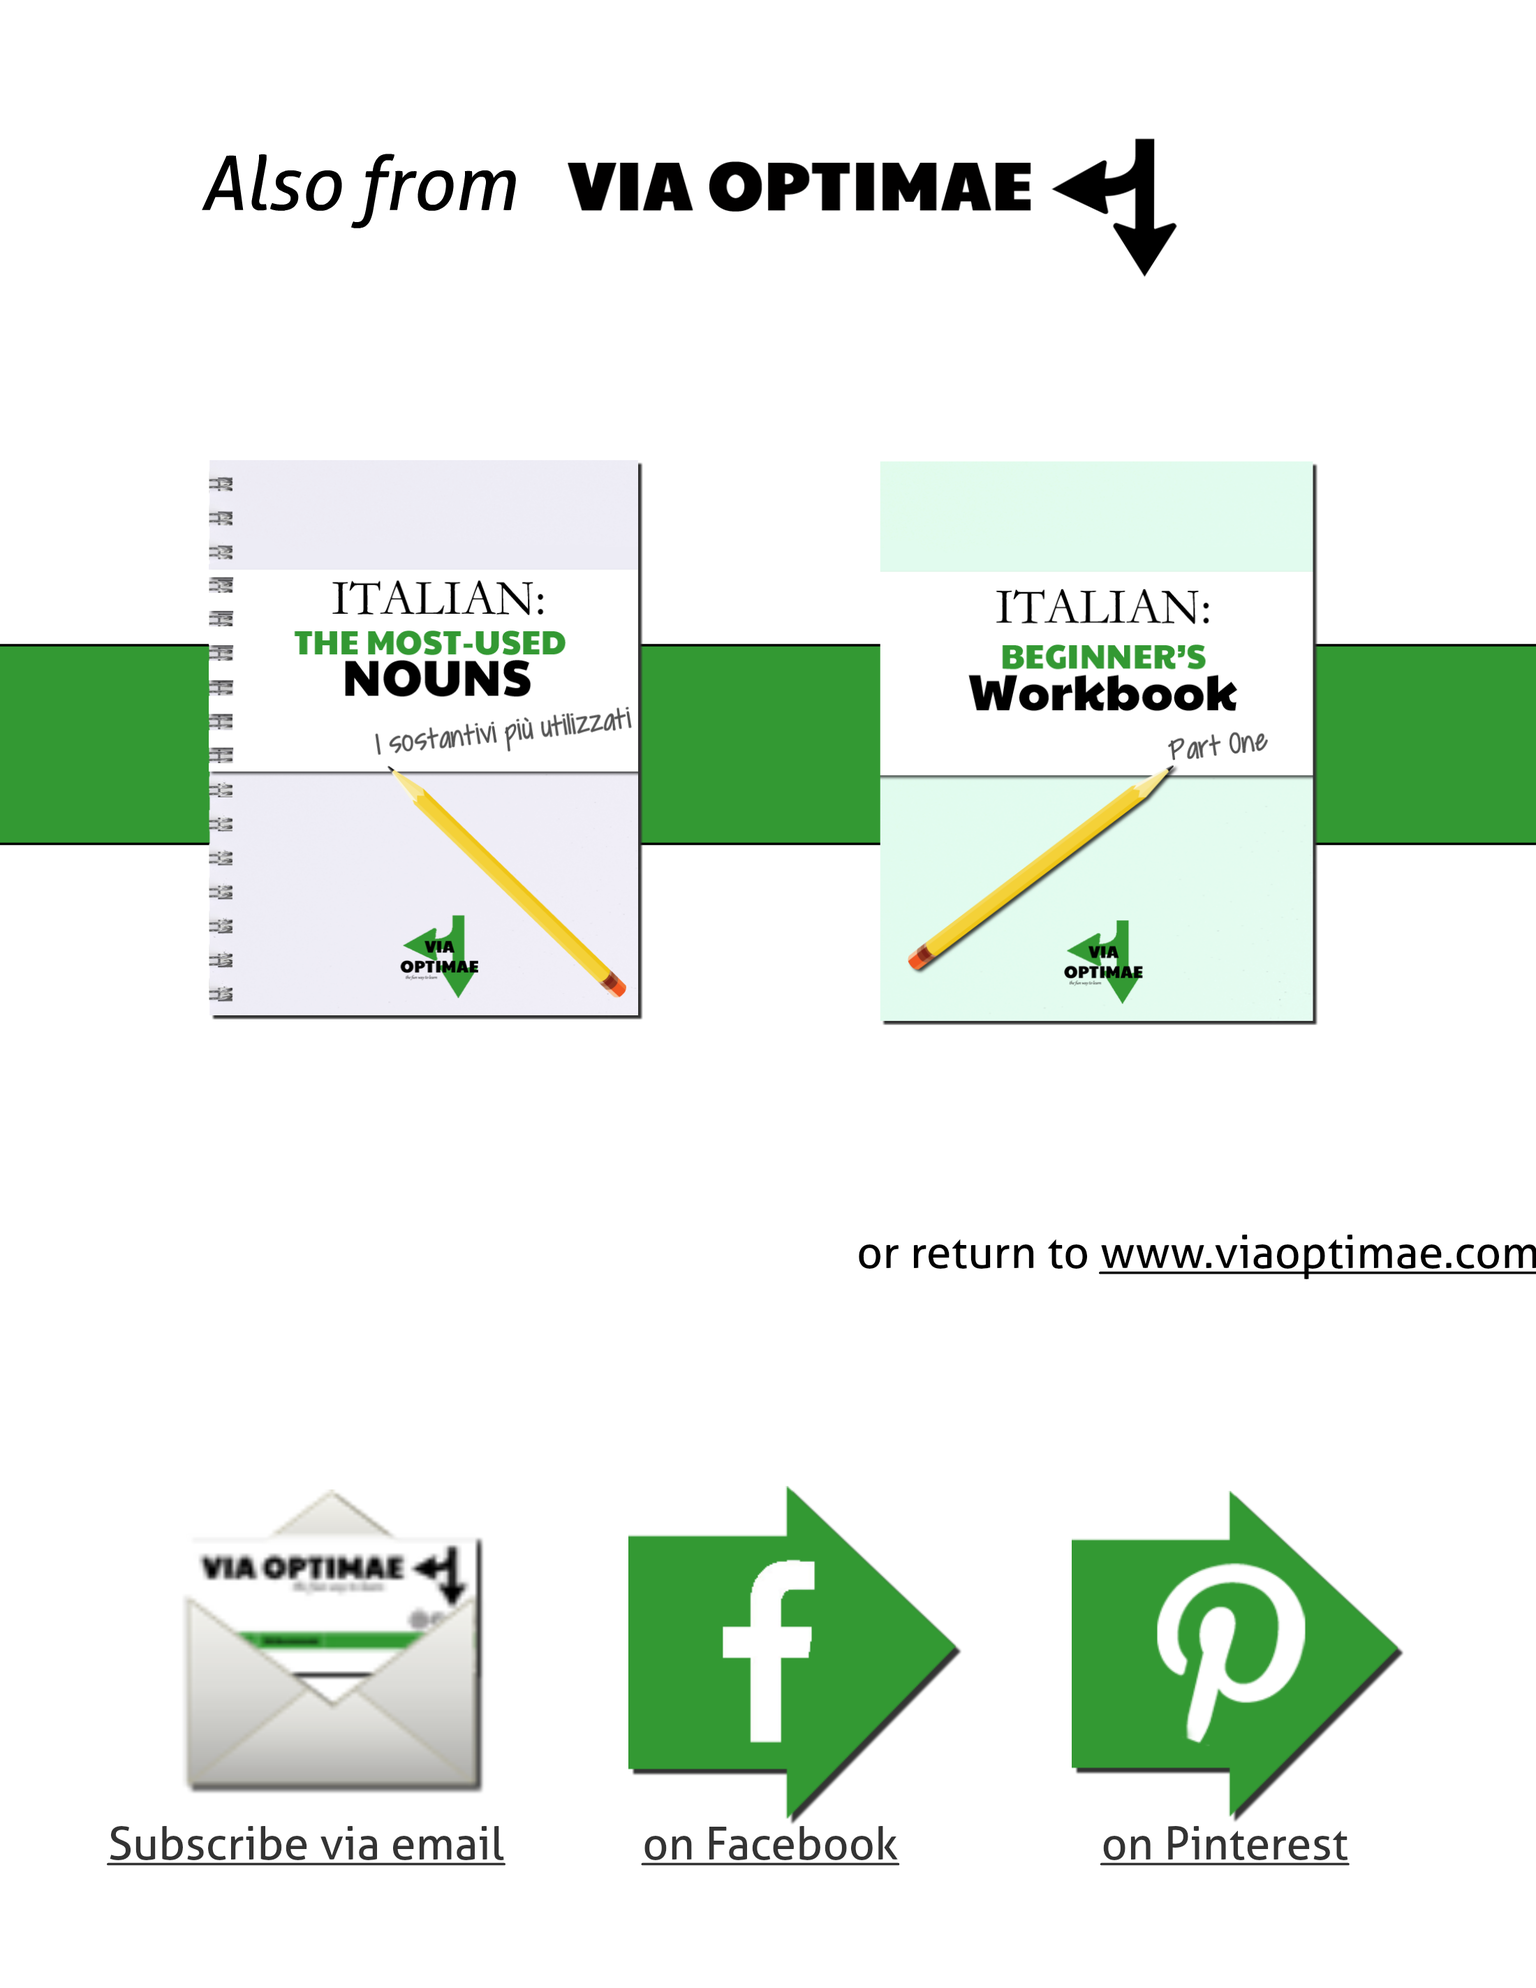 Italian Workbooks The Basics Workbook Part One